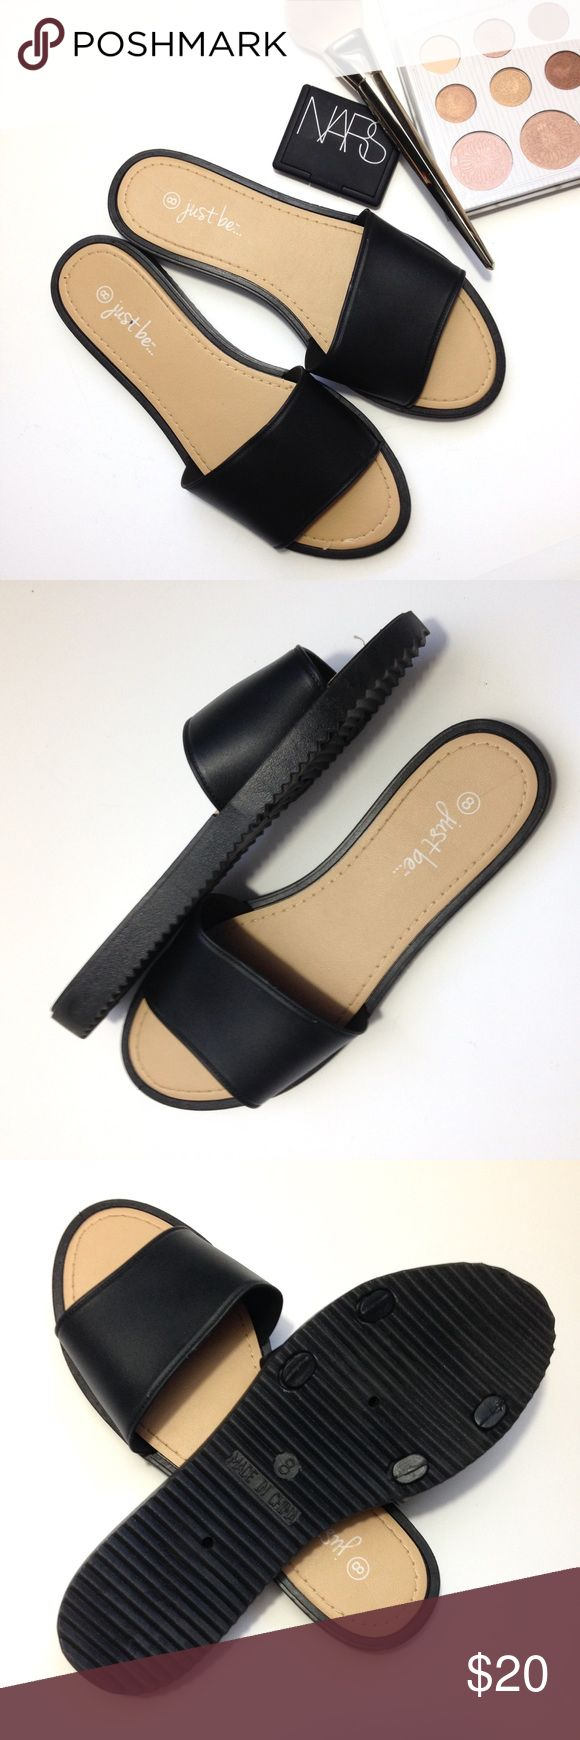 Simple Black Slides Adorable simple black Slider sandals. Show says size 8 but really fits like a 7-7.5. Never been worn. Super trendy✨ JustFab Shoes Sandals